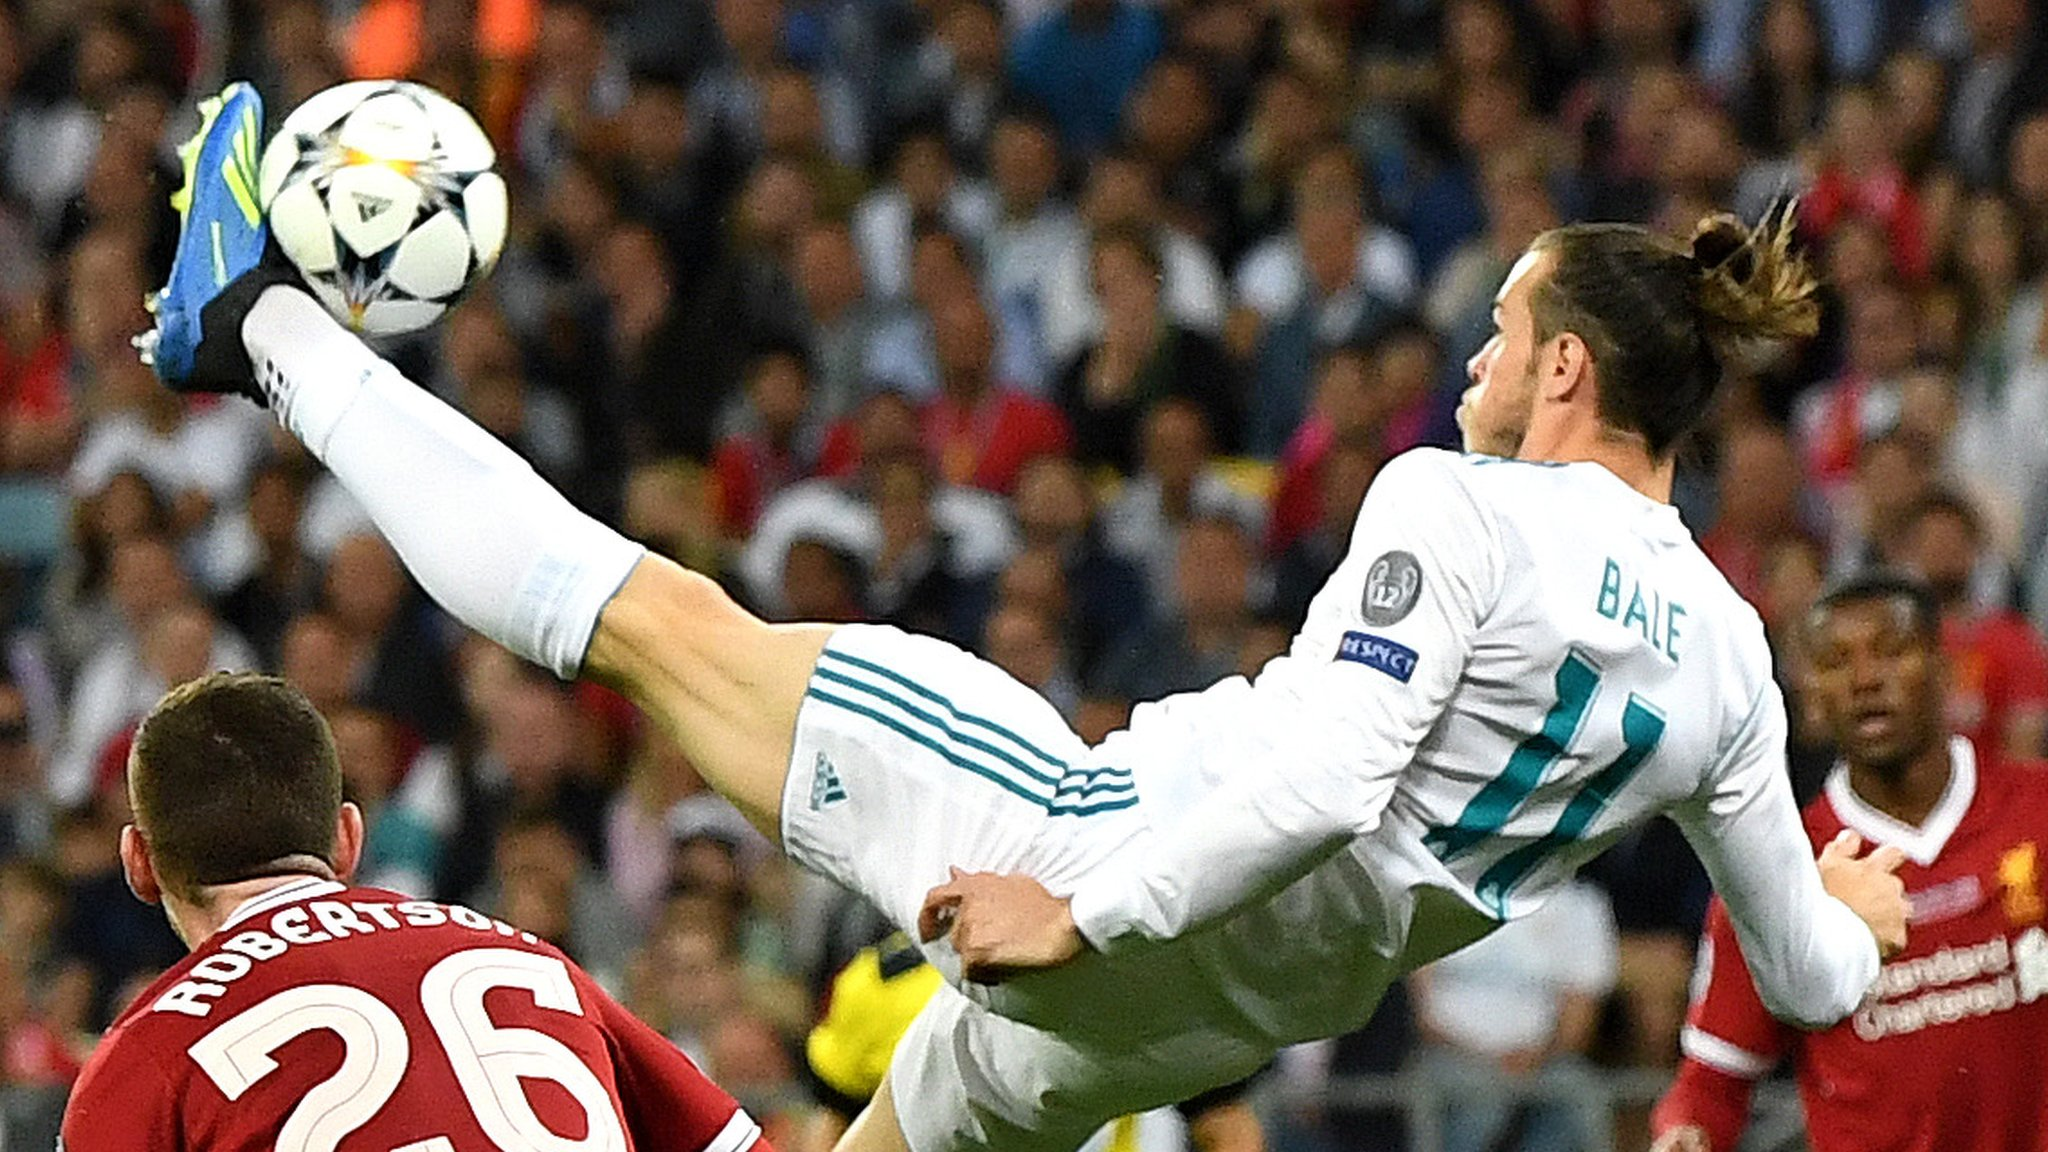 Gareth Bale's Champions League goal: Was it greatest in competition?